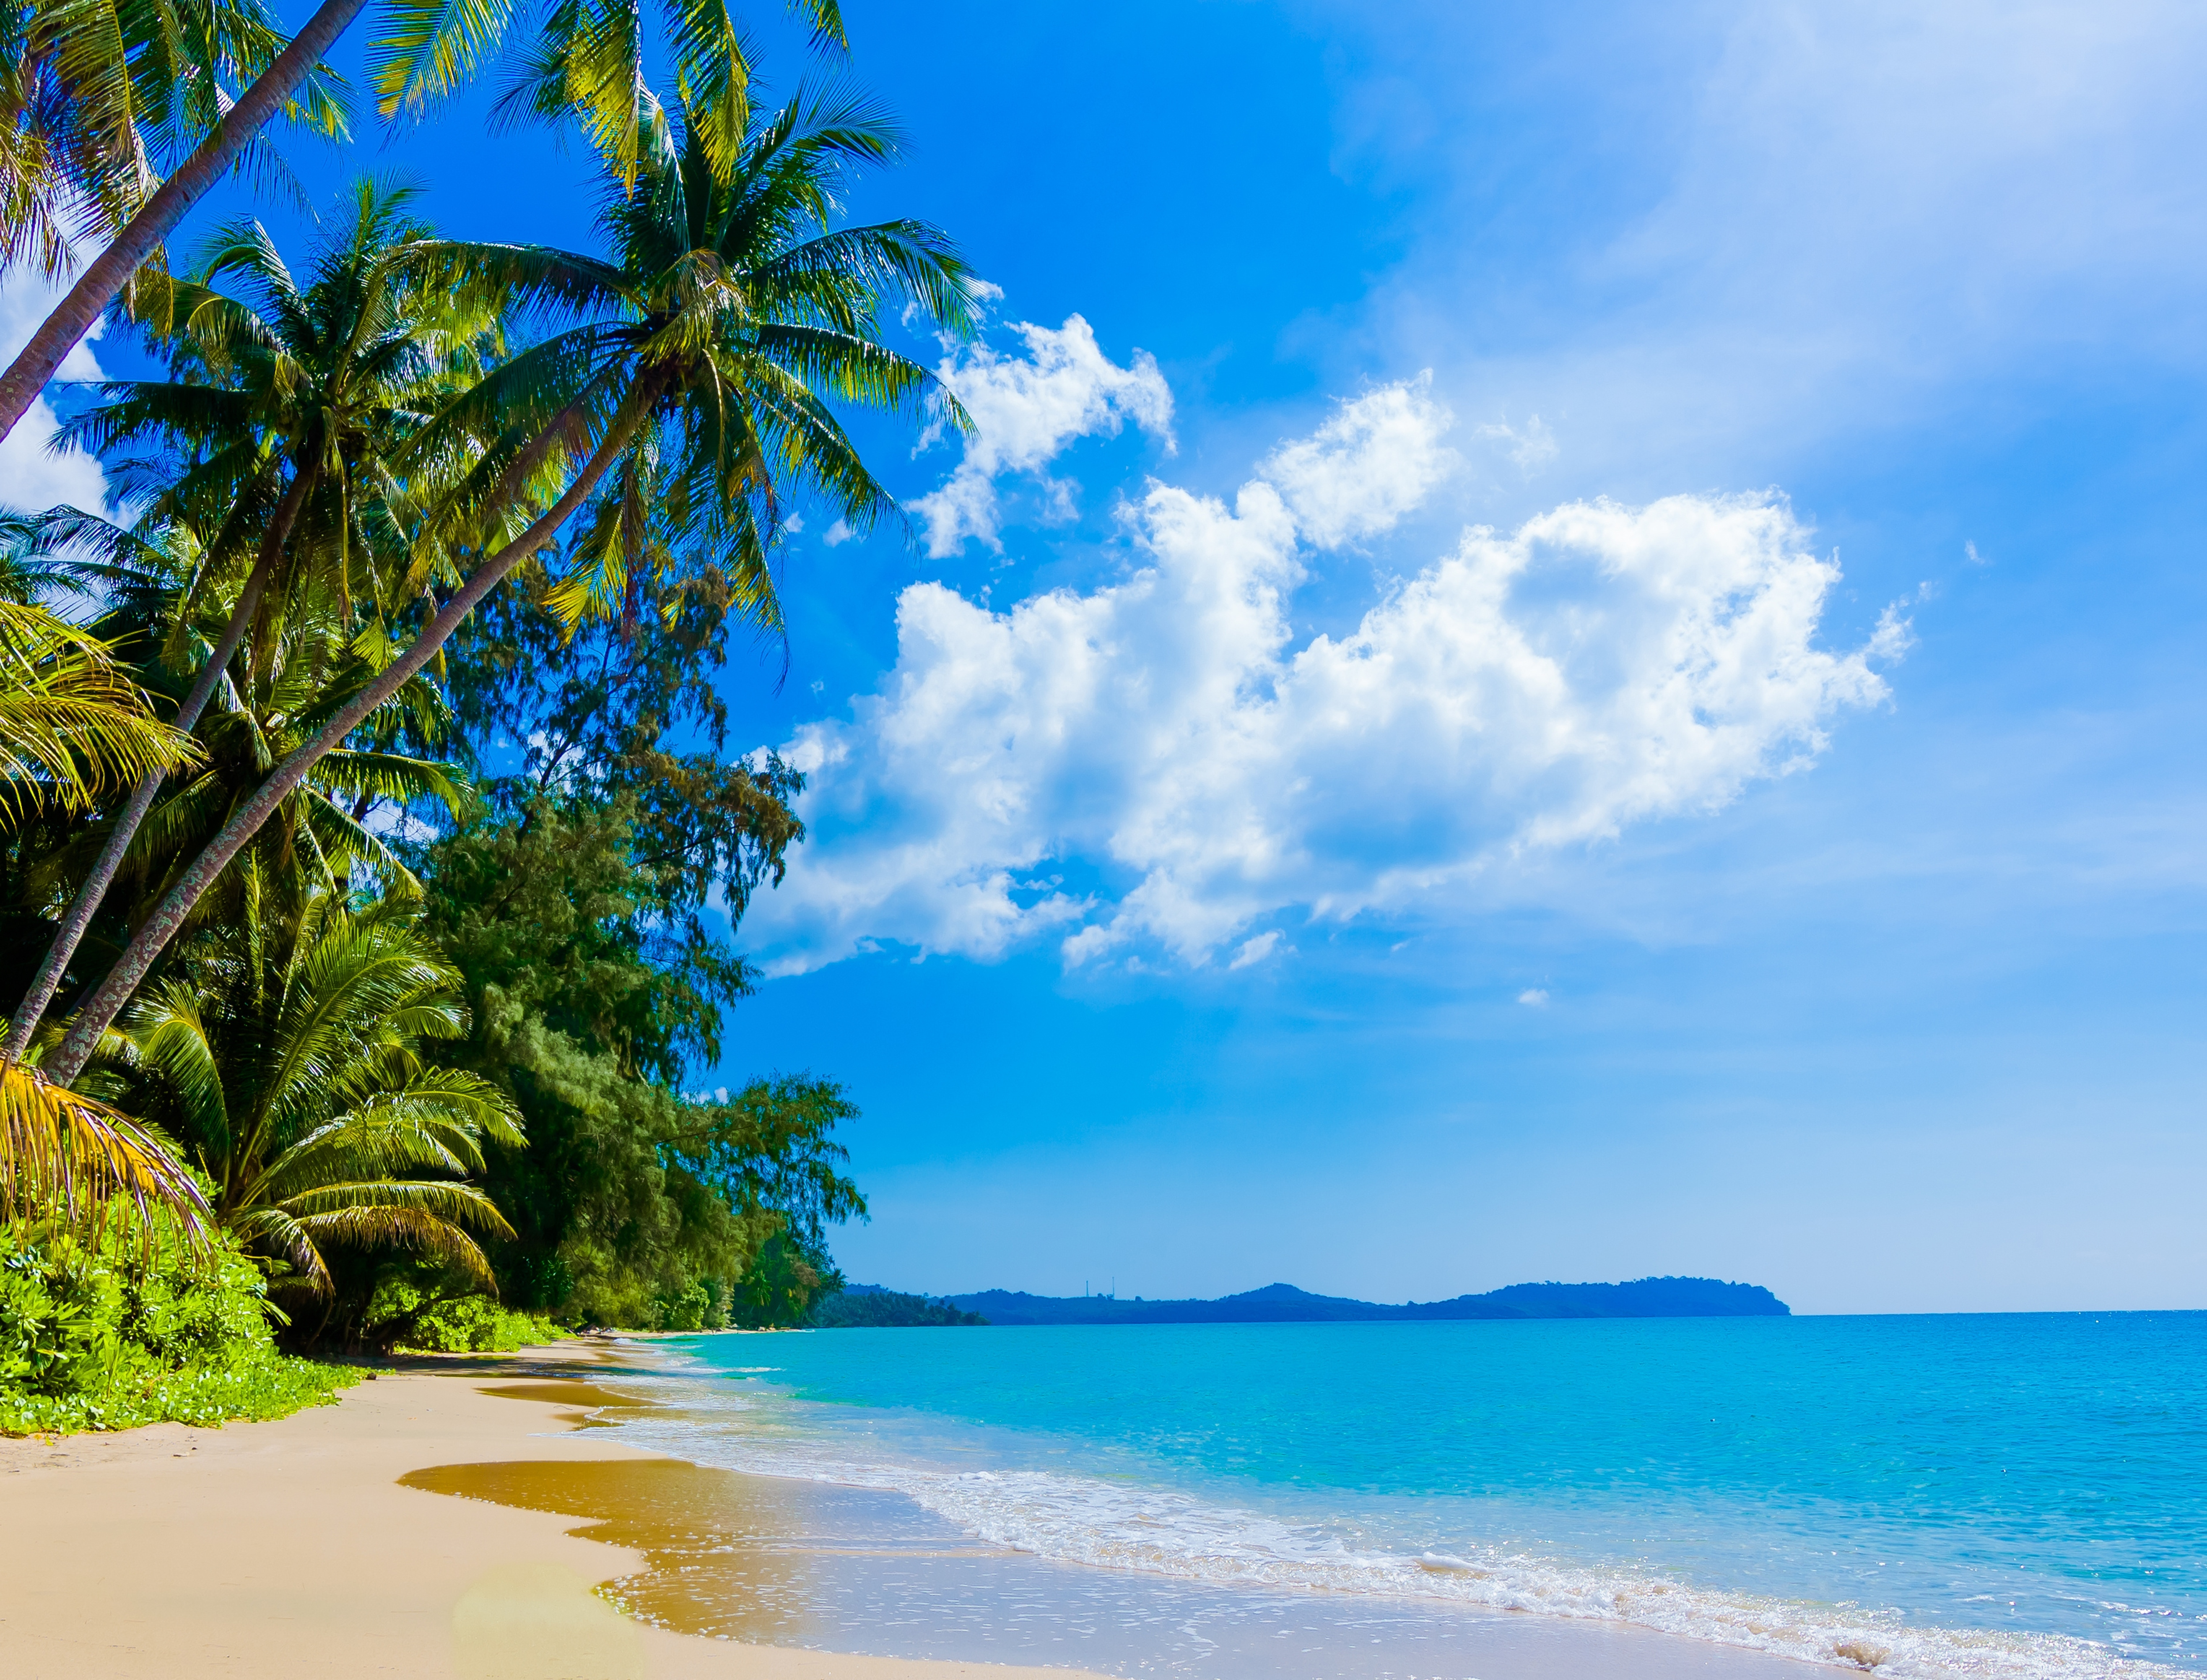 Download Samsung Beach Wallpaper Gallery: Sunny Day On The Beach HD